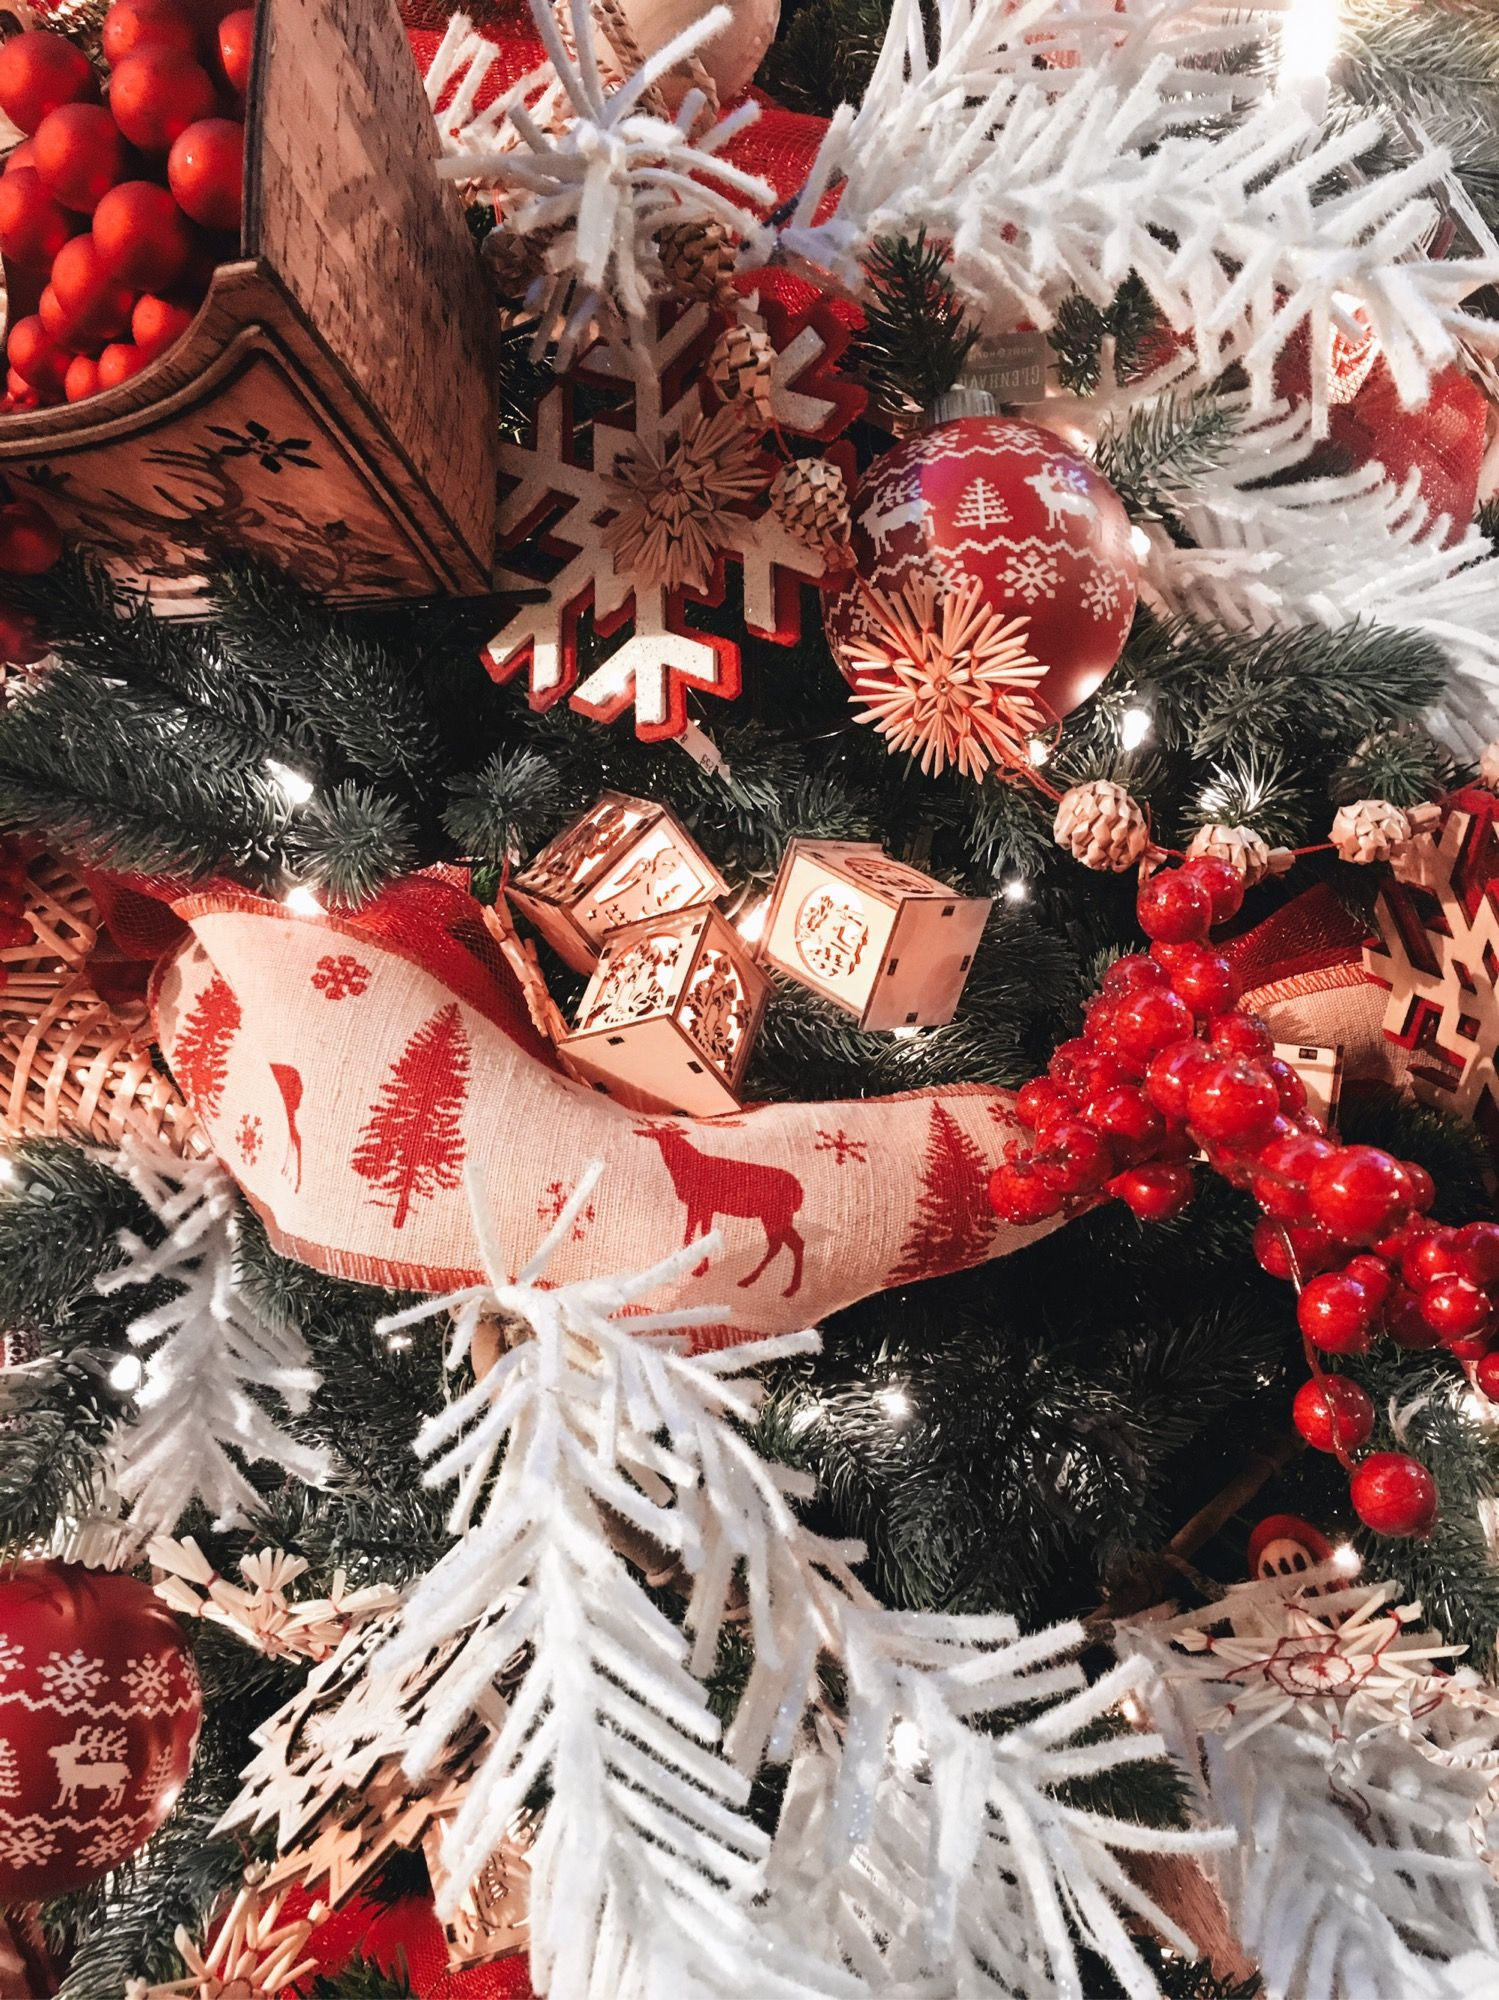 Pin by Bella on Christmas Pinterest